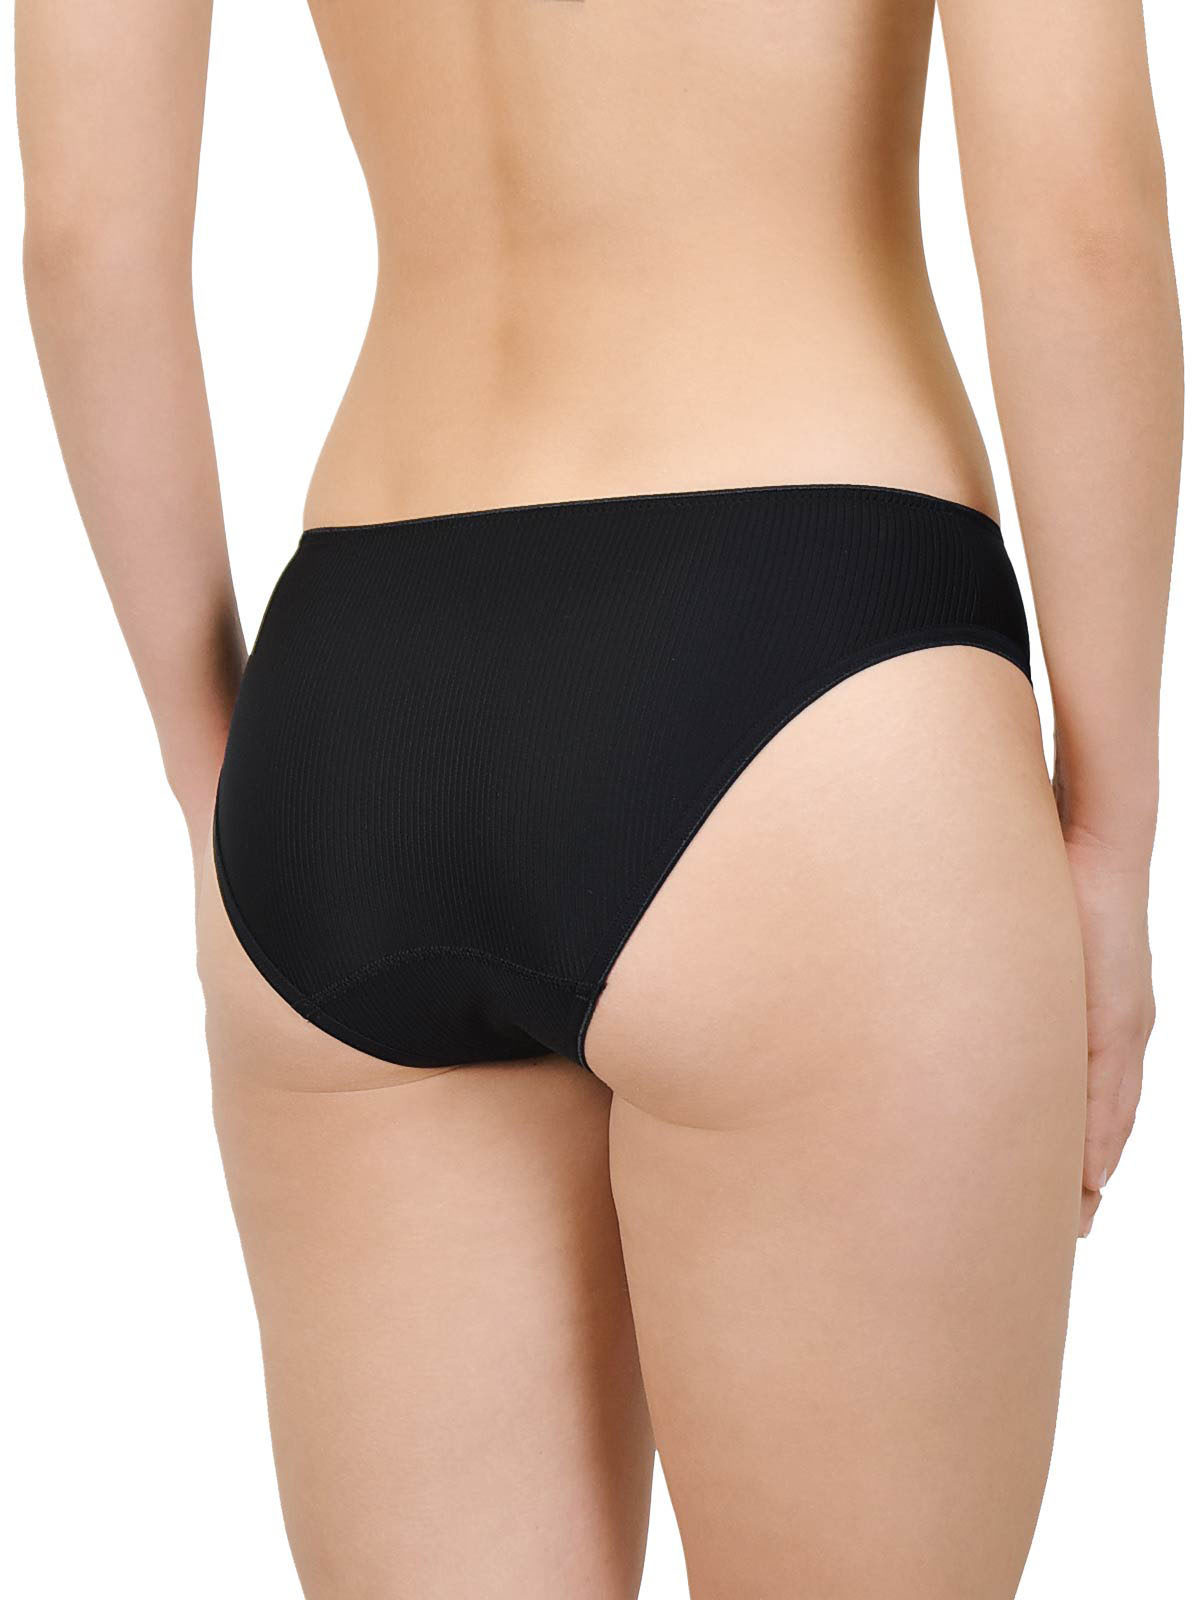 Women's Brief 94101